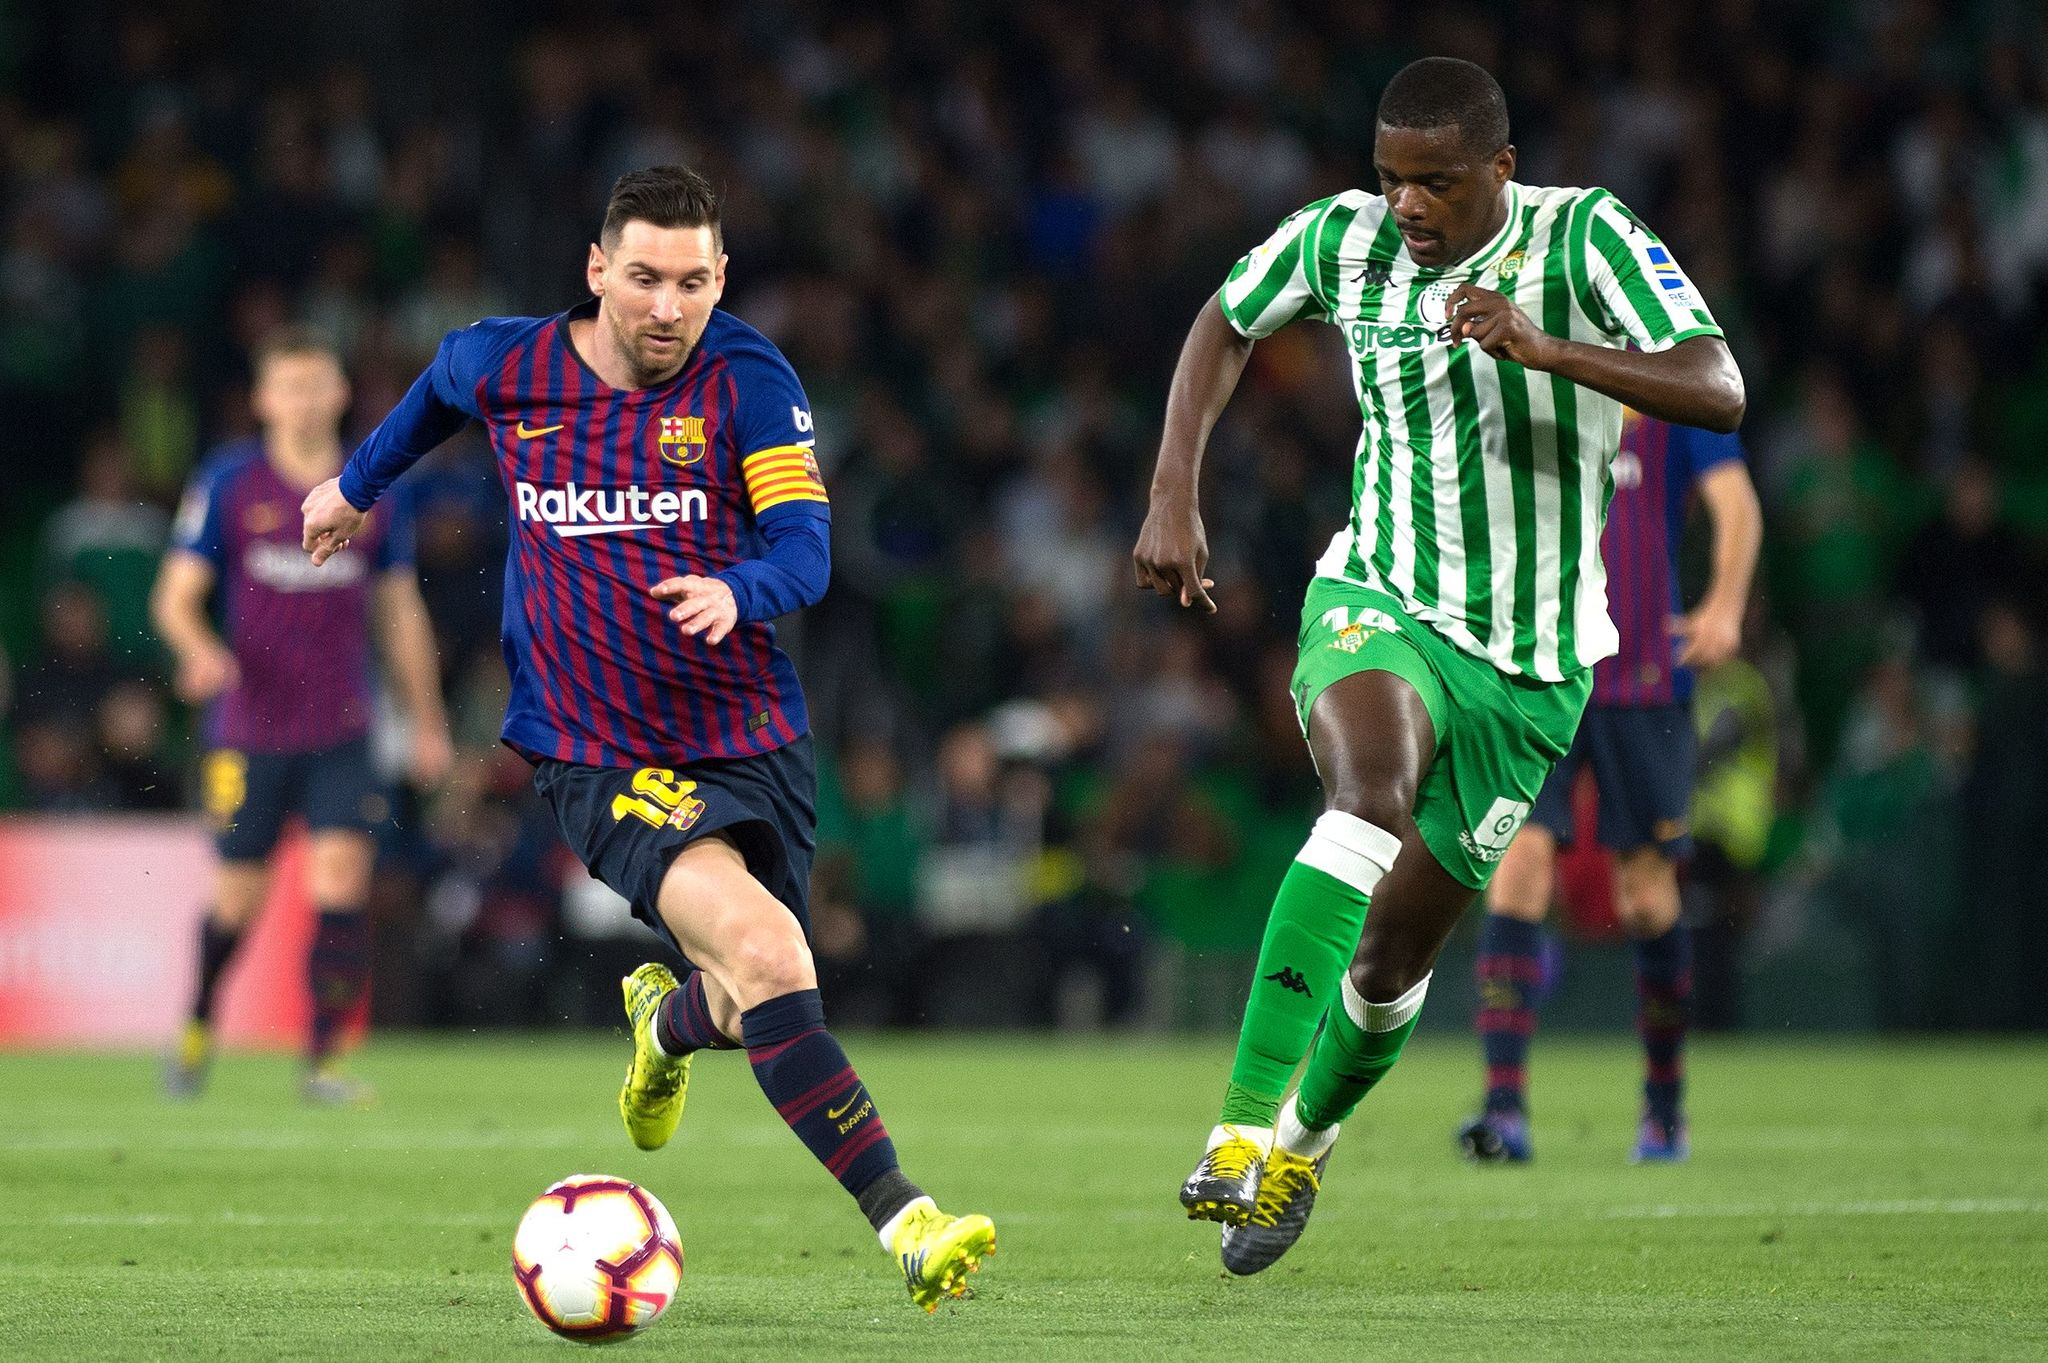 Barcelonas Argentinian forward Lionel Messi (L) vies with Real <HIT>Betis</HIT> Portuguese midfielder <HIT>William</HIT> Carvalho during the Spanish league football match between Real <HIT>Betis</HIT> and FC Barcelona at the Benito Villamarin stadium in Seville on March 17, 2019. (Photo by JORGE GUERRERO / AFP)